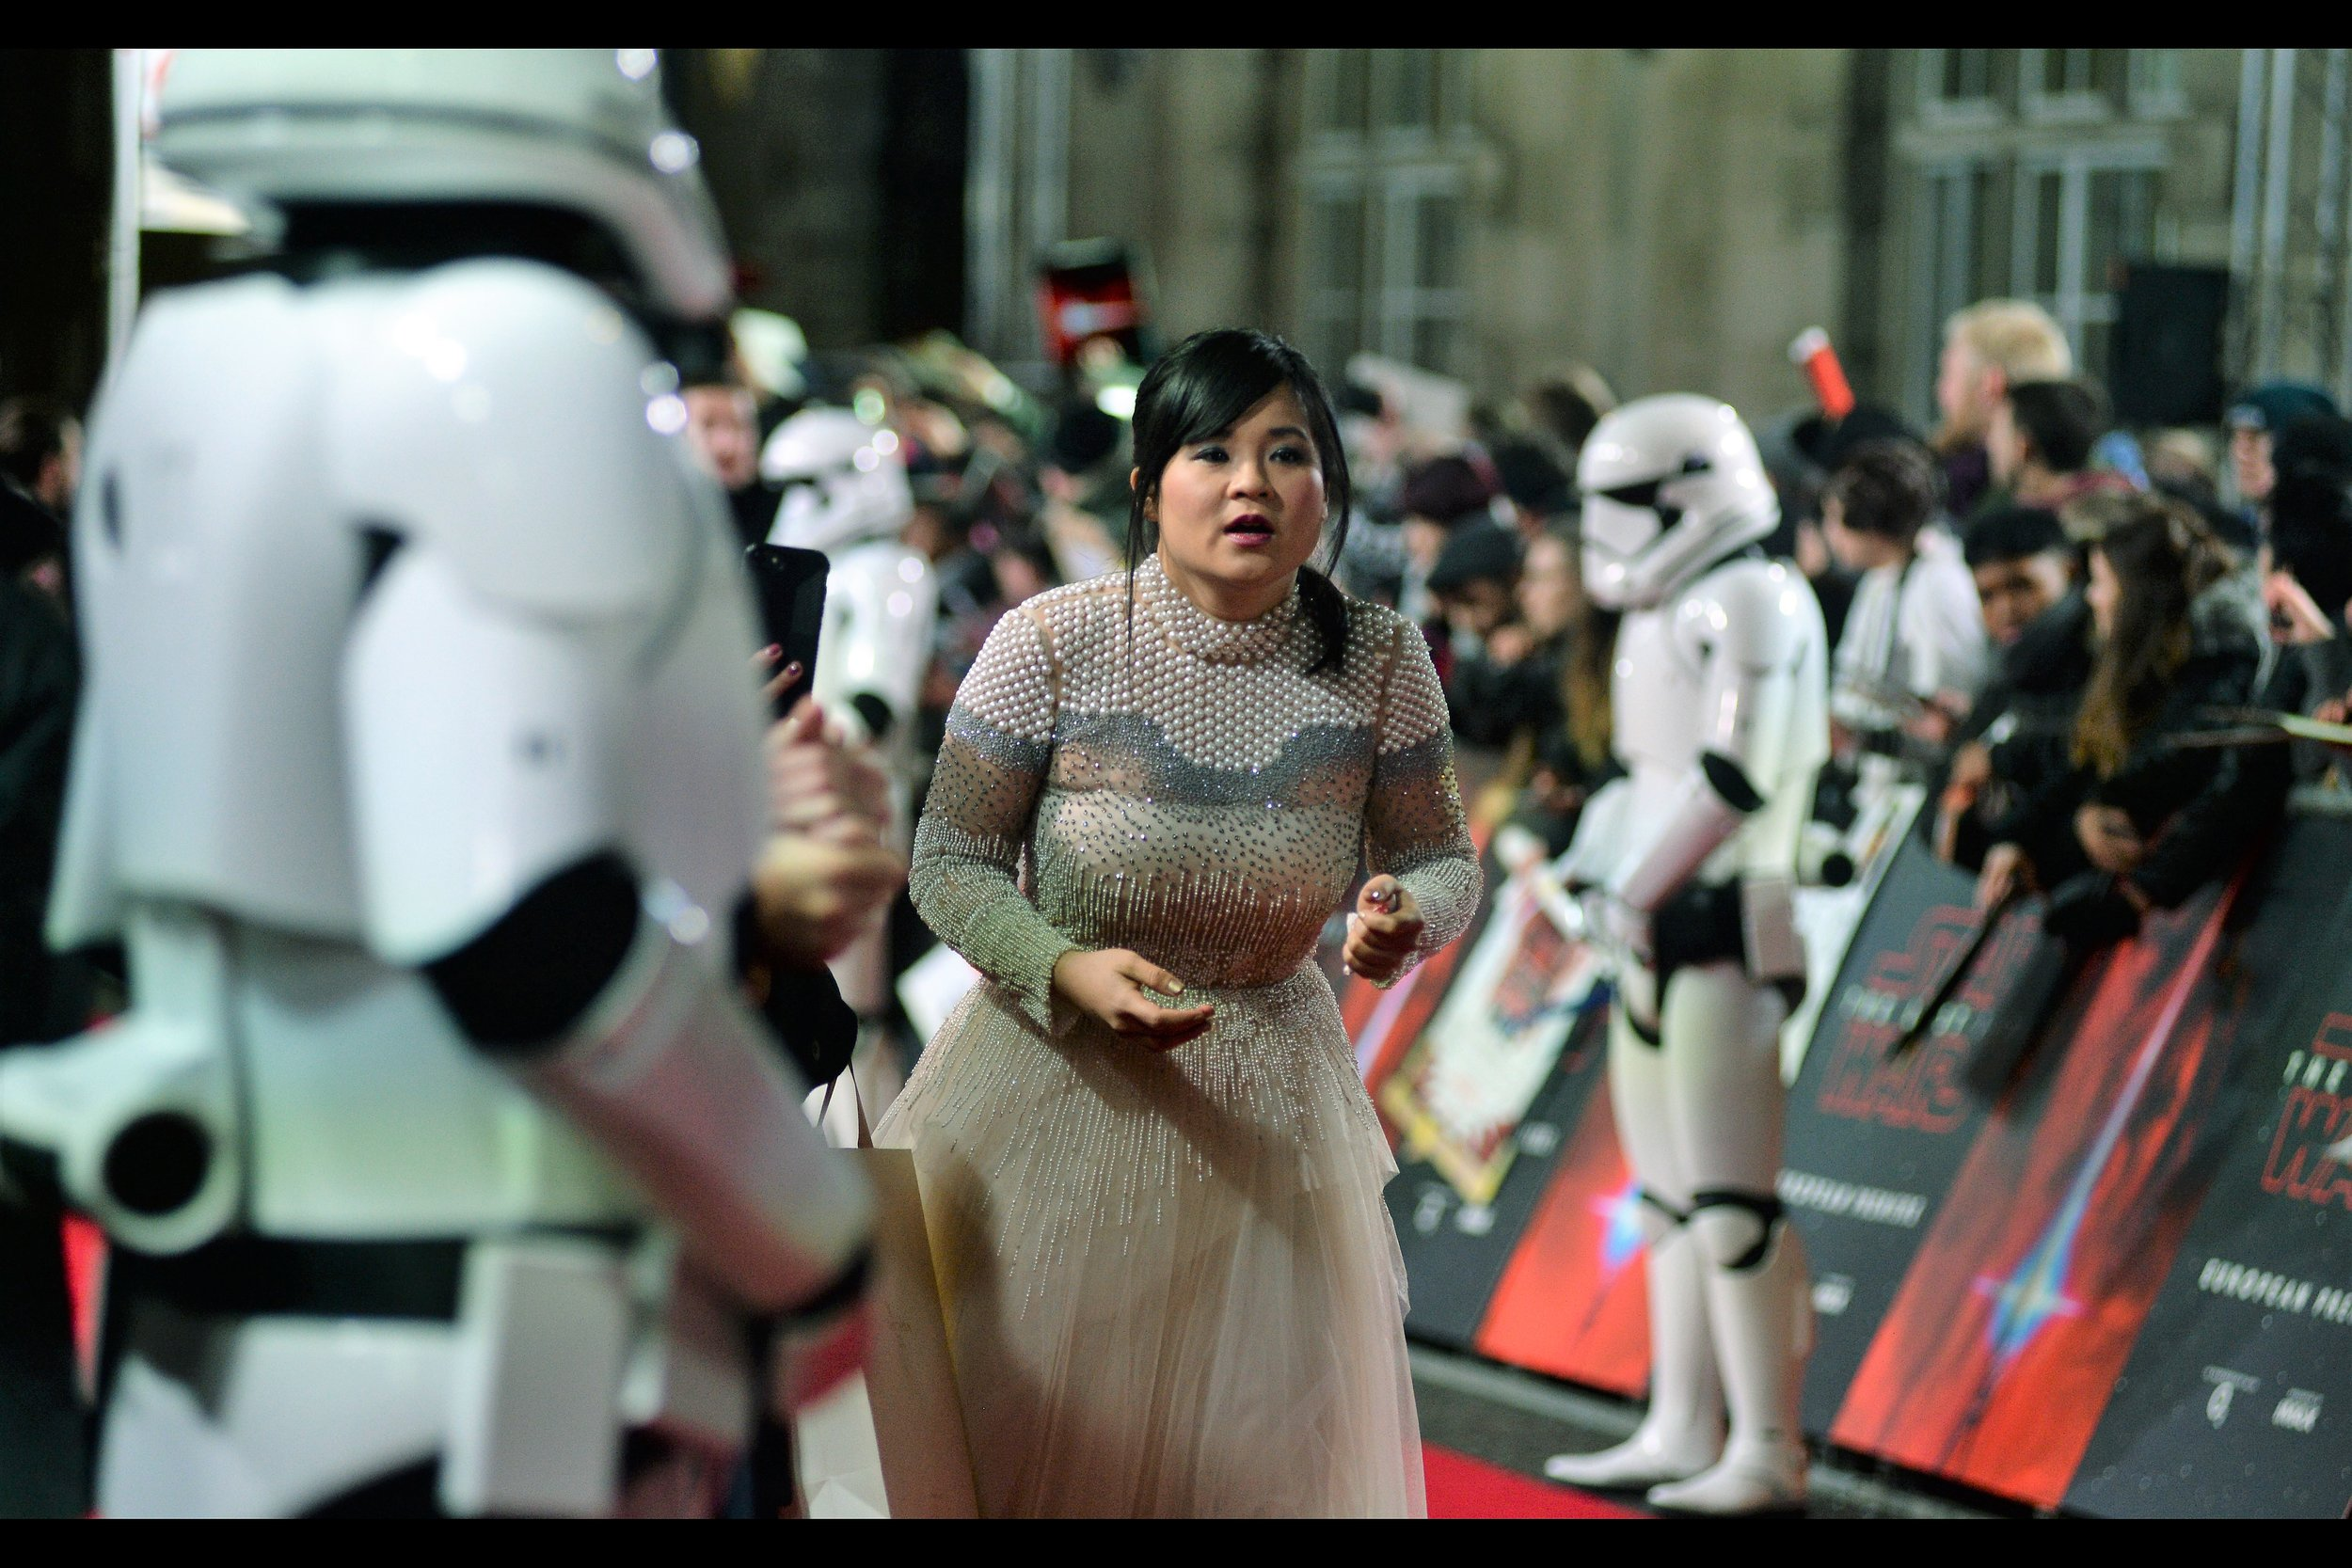 """When I start my own pan-galactic organisation of terror and fear, the dress I'm wearing will be our official uniform!""  Kelly Marie Tran is in this movie... and in MY pan-galactic organisation of terror and fear, anyone who walks while staring at or texting on their phone will be allowed to be shoulder-charged at full force and they must then apologise to the person who shoulder-charged them."